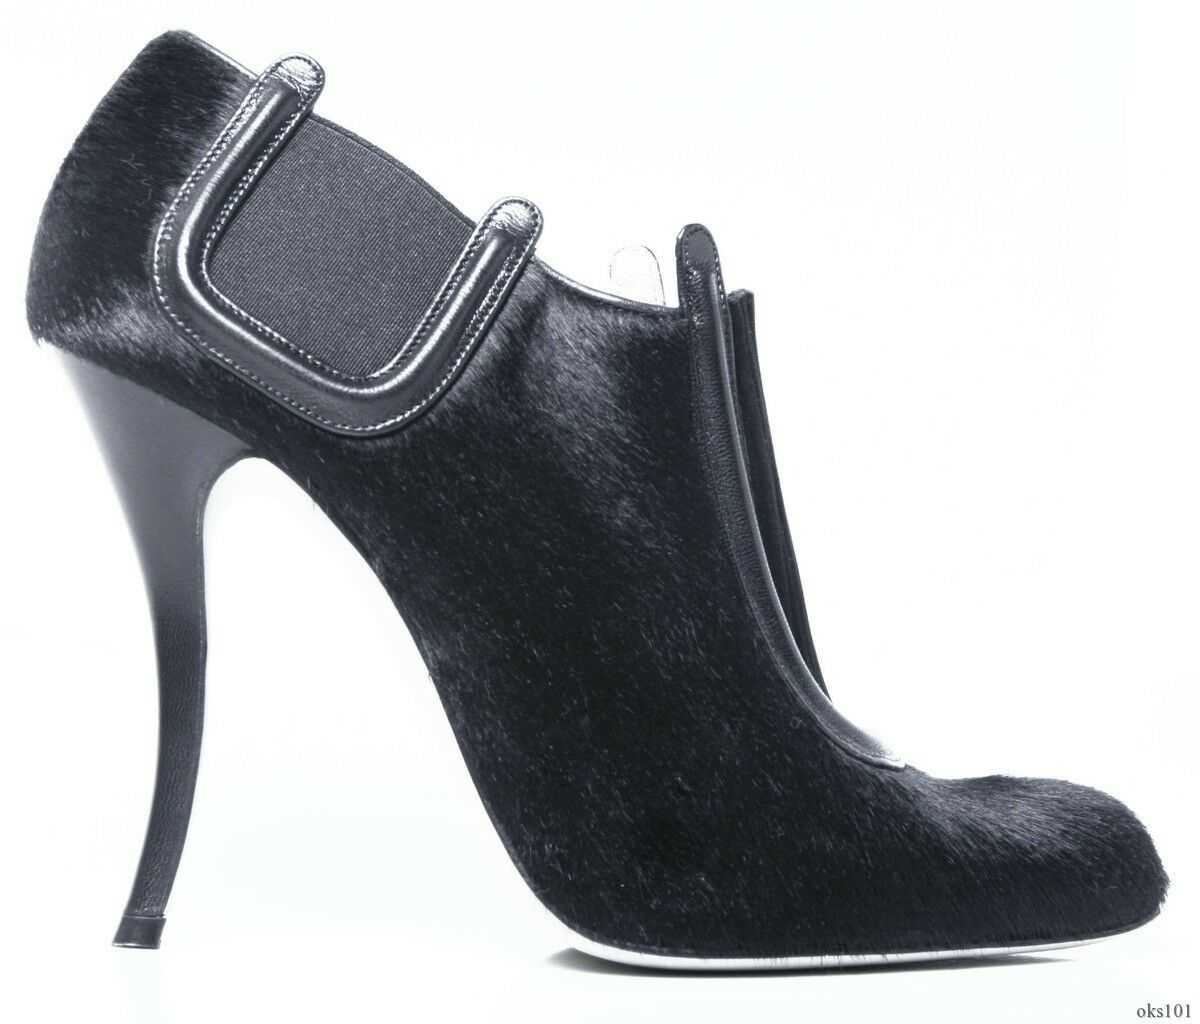 New New New  1195 MANOLO BLAHNIK  Peresil  black pony hair ANKLE BOOTS booties - AMAZING c1c8a4